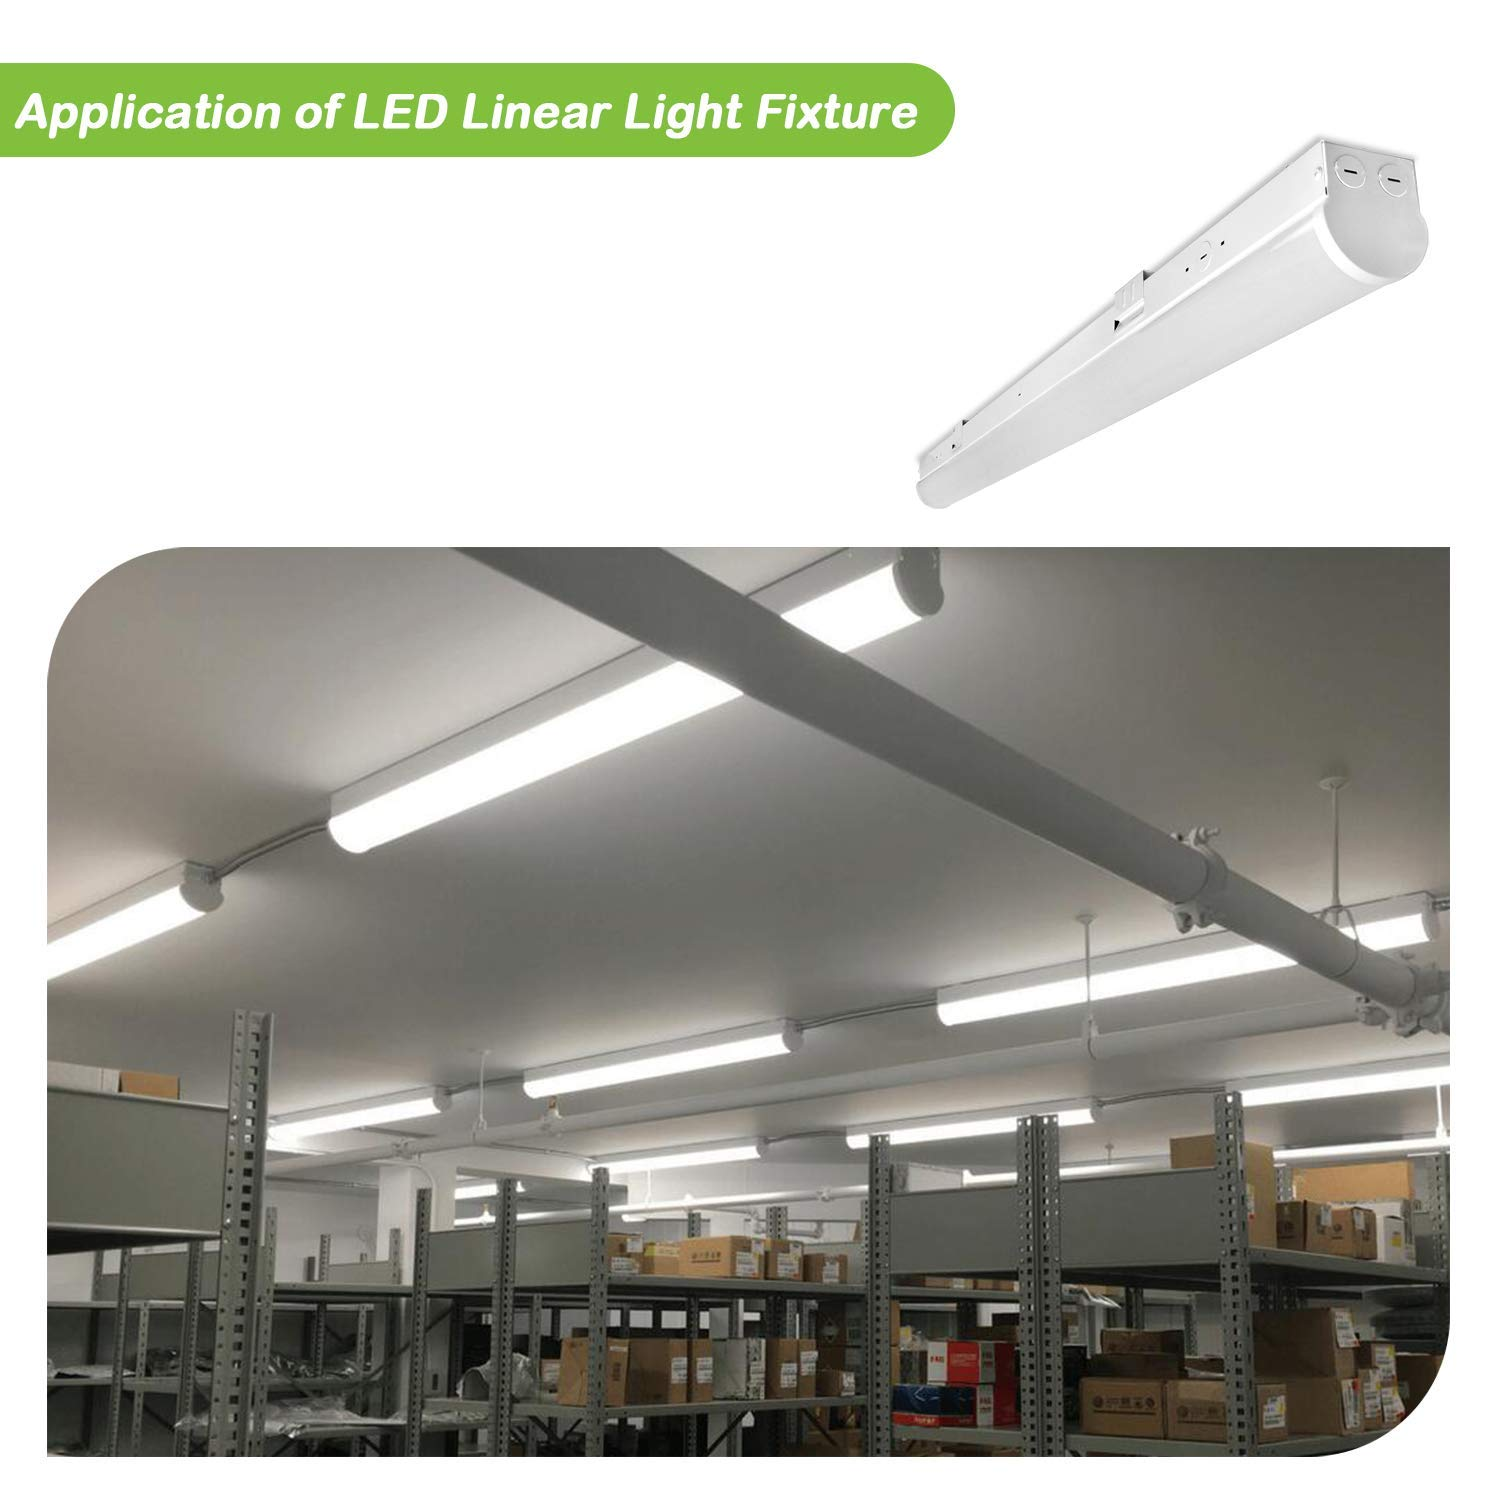 Hykolity 8FT LED Shop Linear Strip Light Fixture Linkable 64W 8400lm Replaces up to 4-lamp 32-Watt T8 fluorescent Tube Low Bay Commercial Industrial 5000K 0-10V Dimmable UL DLC Listed 2 Pack by hykolity (Image #7)